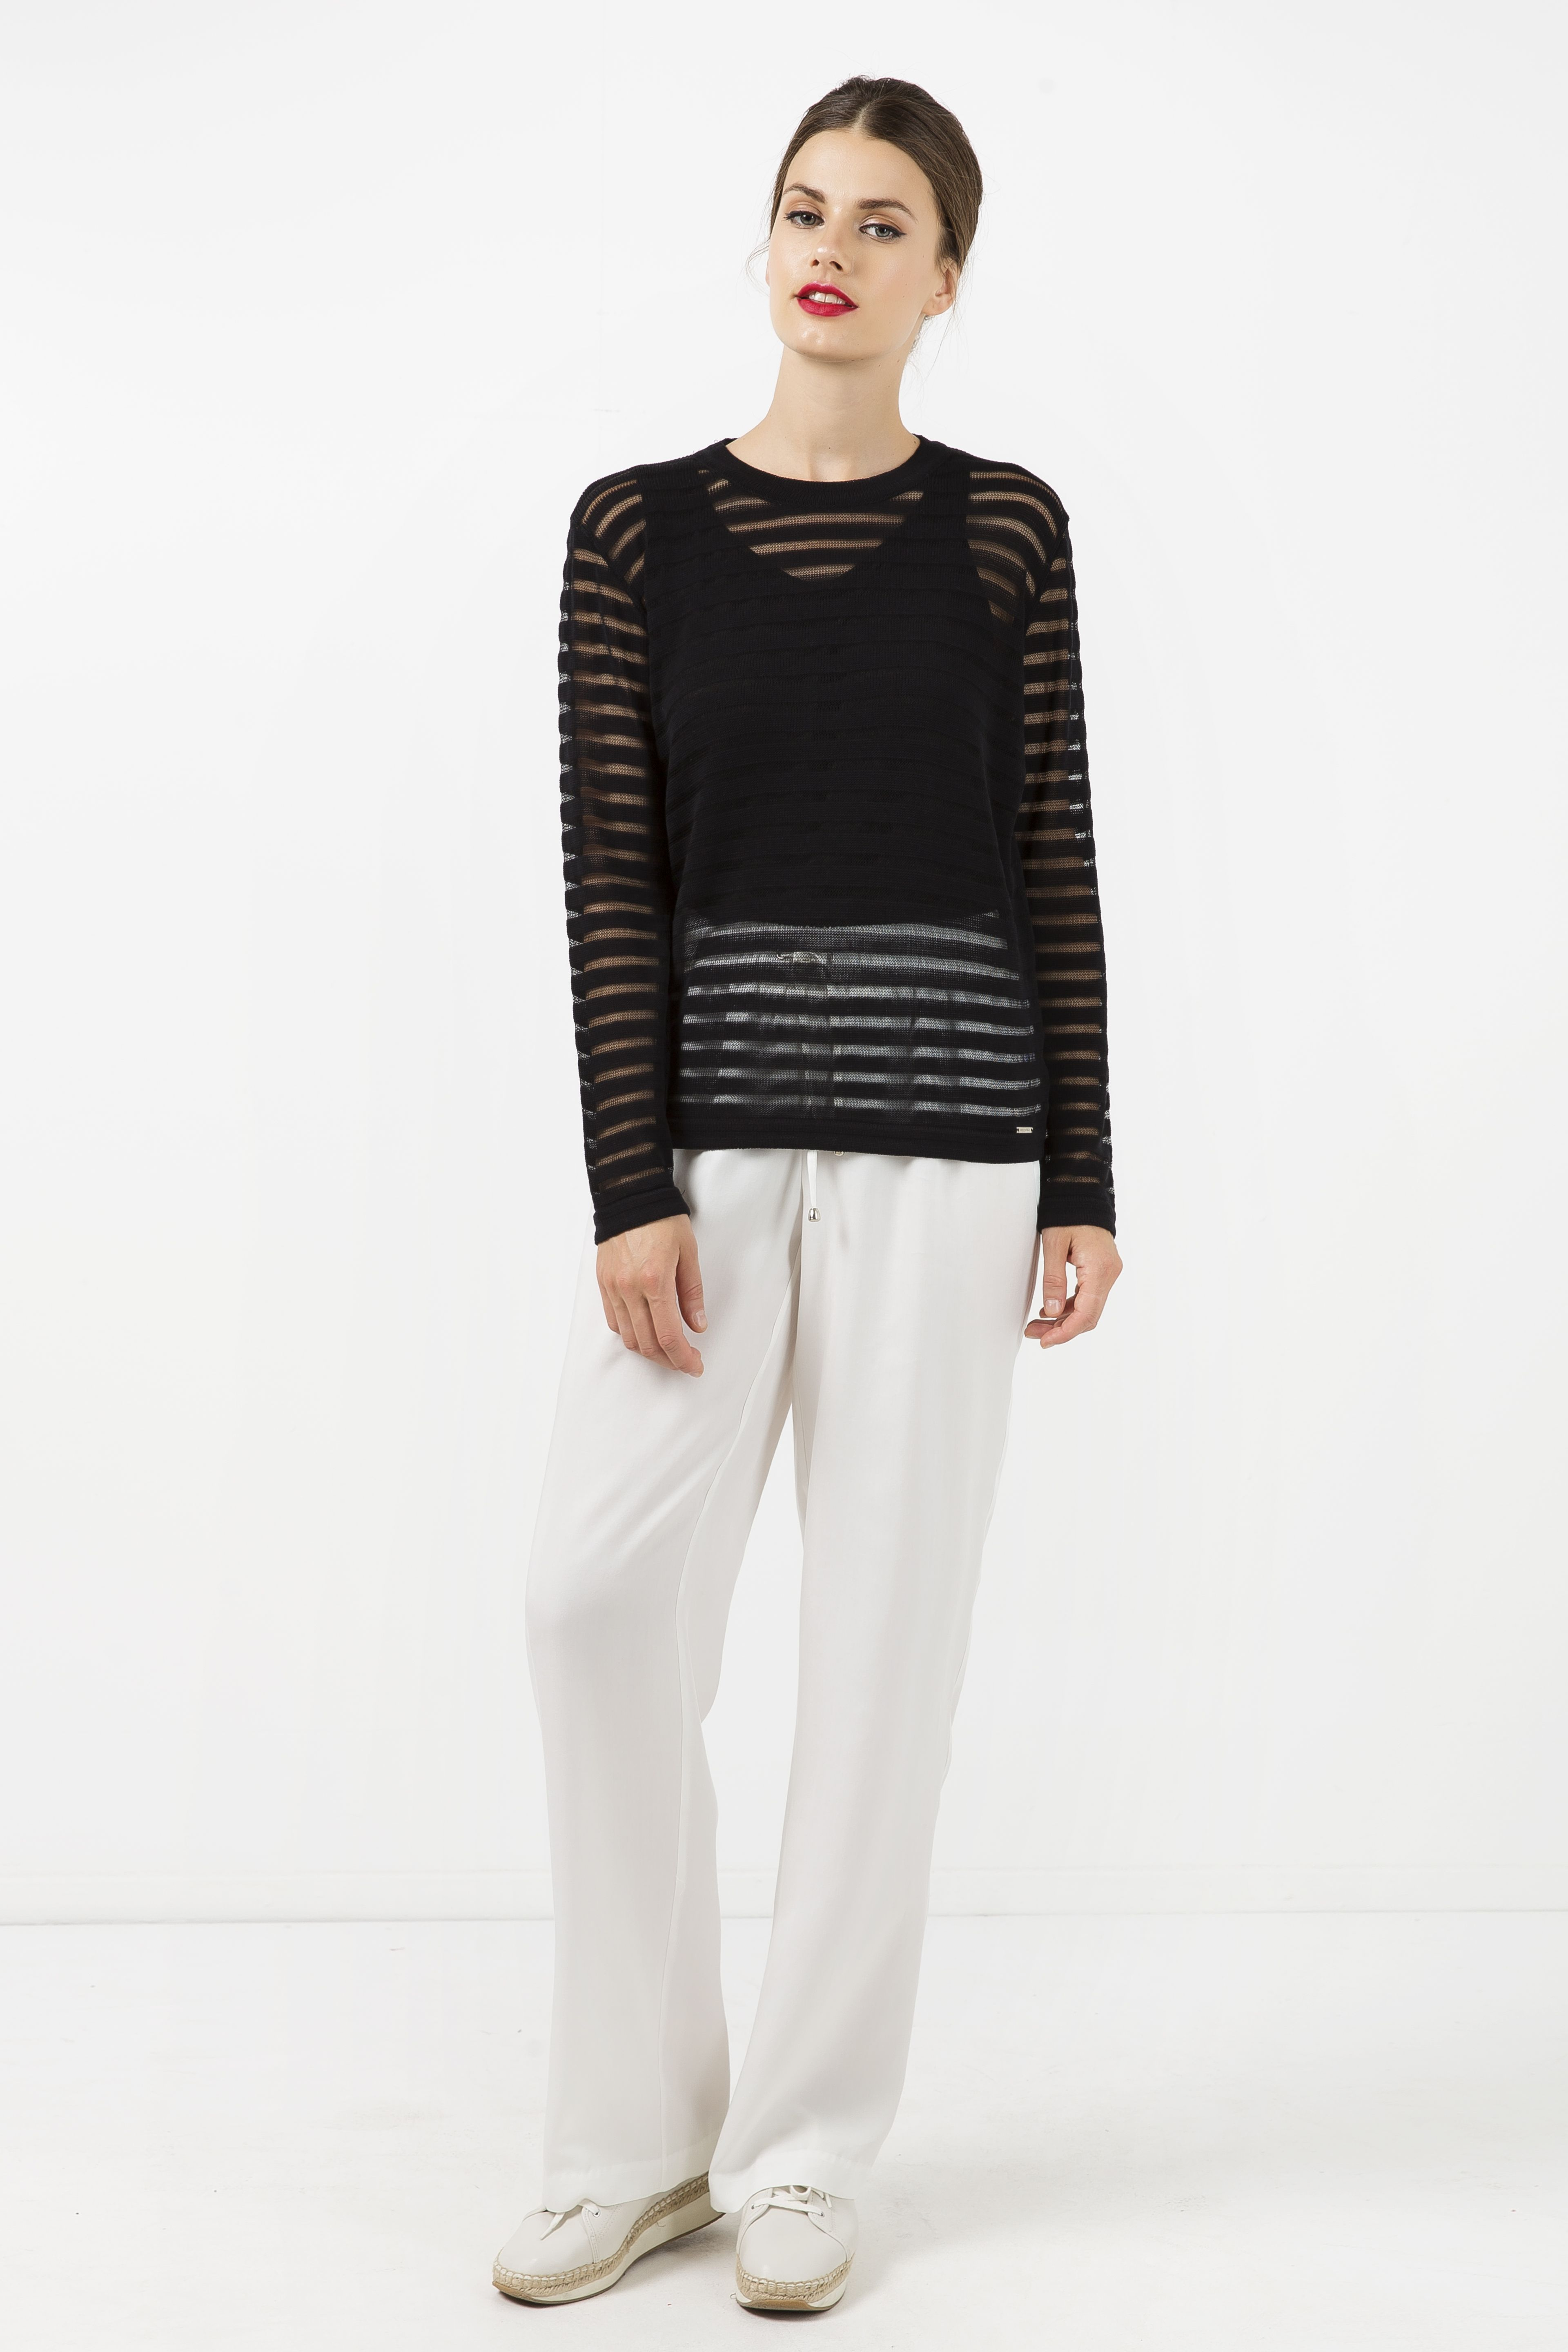 Black Knit Top with Semi Sheer Stripes